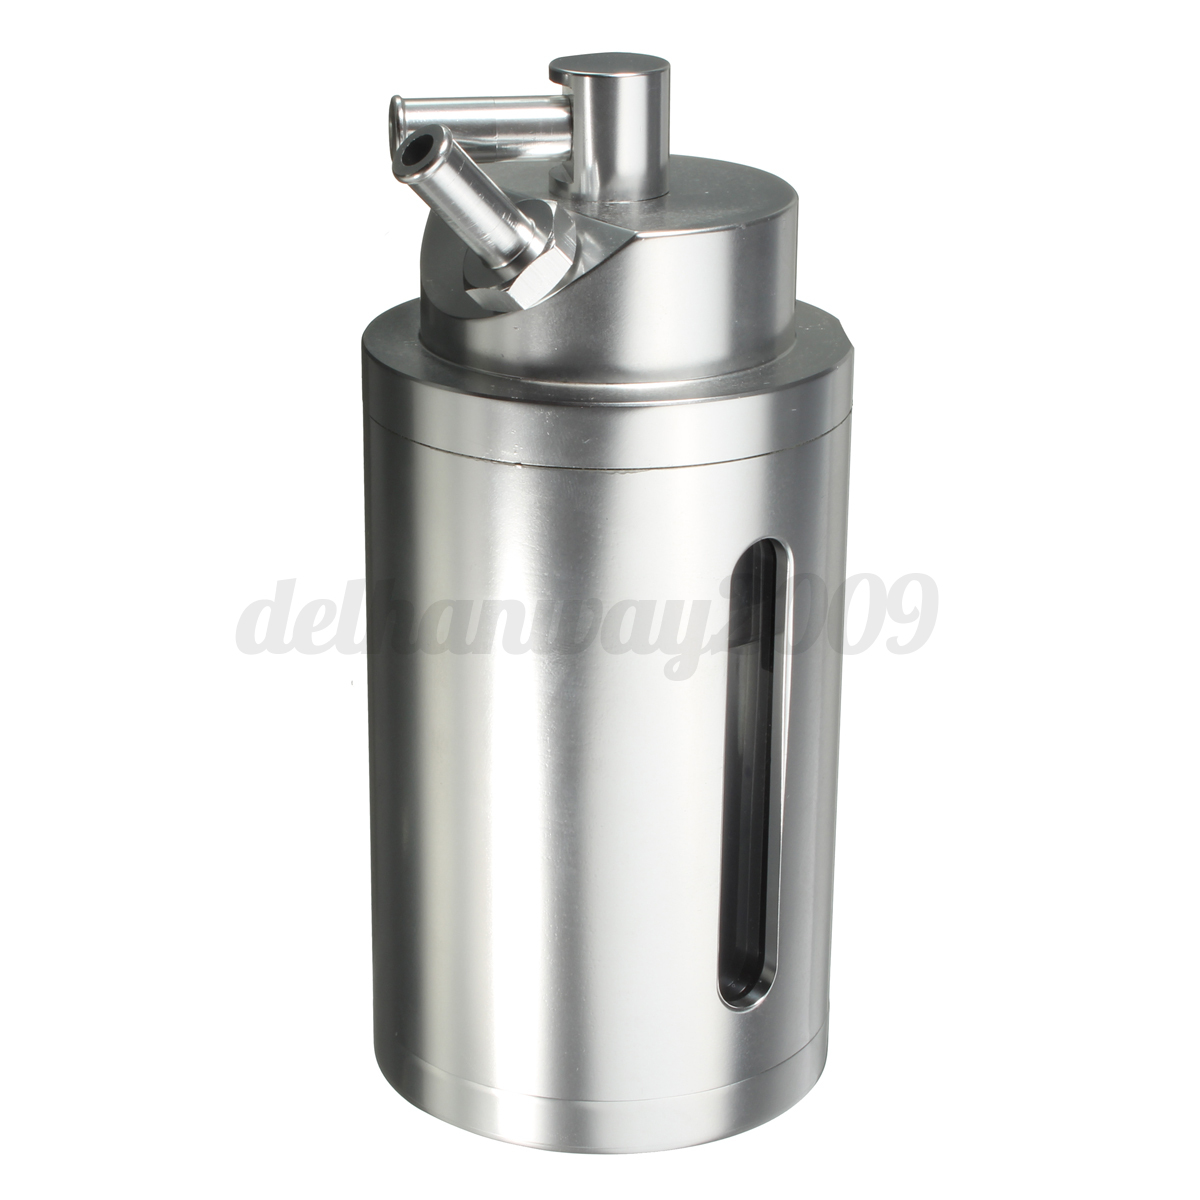 Universal Turbo Kit 4 Cylinder: Universal 0.5L Turbo Cylinder Oil Catch Tank Can Breather